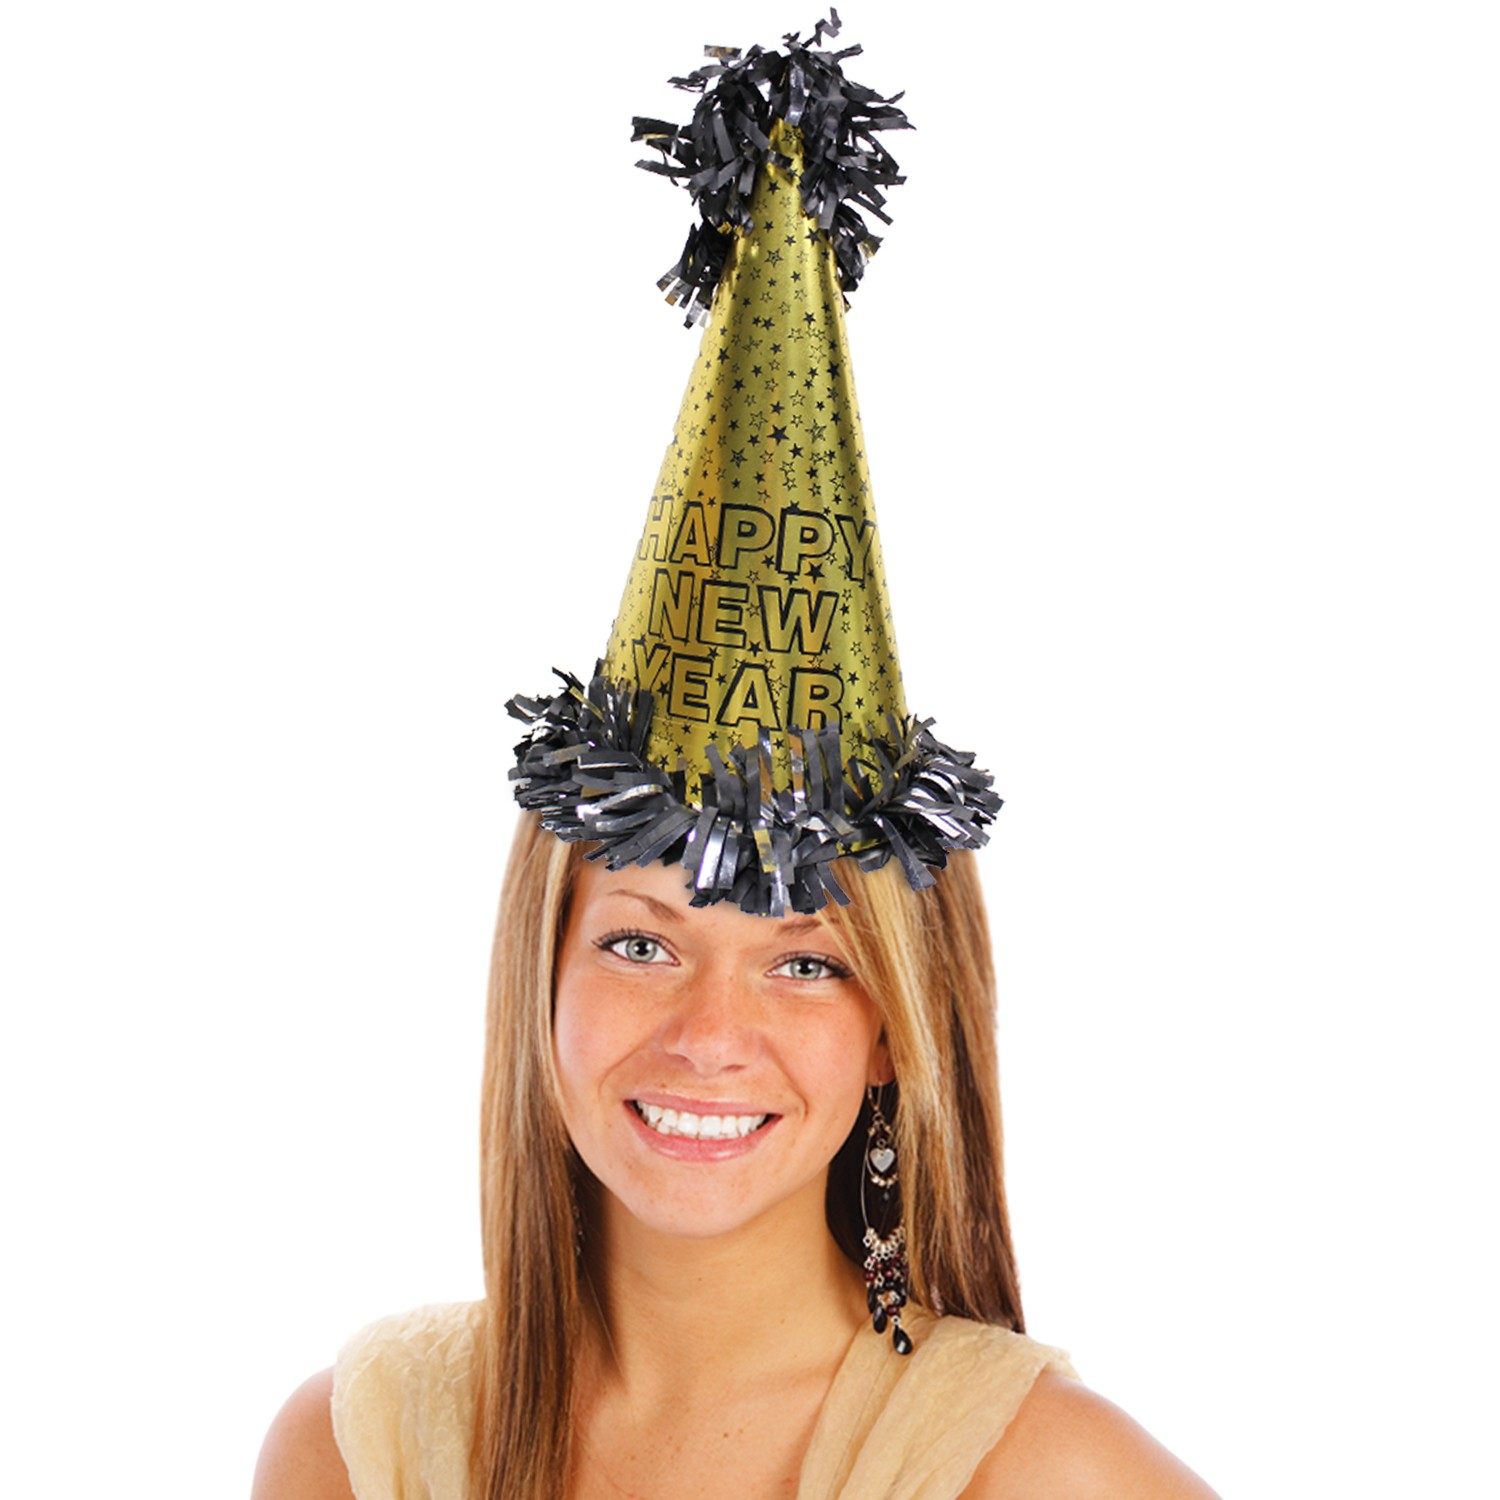 Happy New Year Metallic Gold Cone Hat - 15 Inch